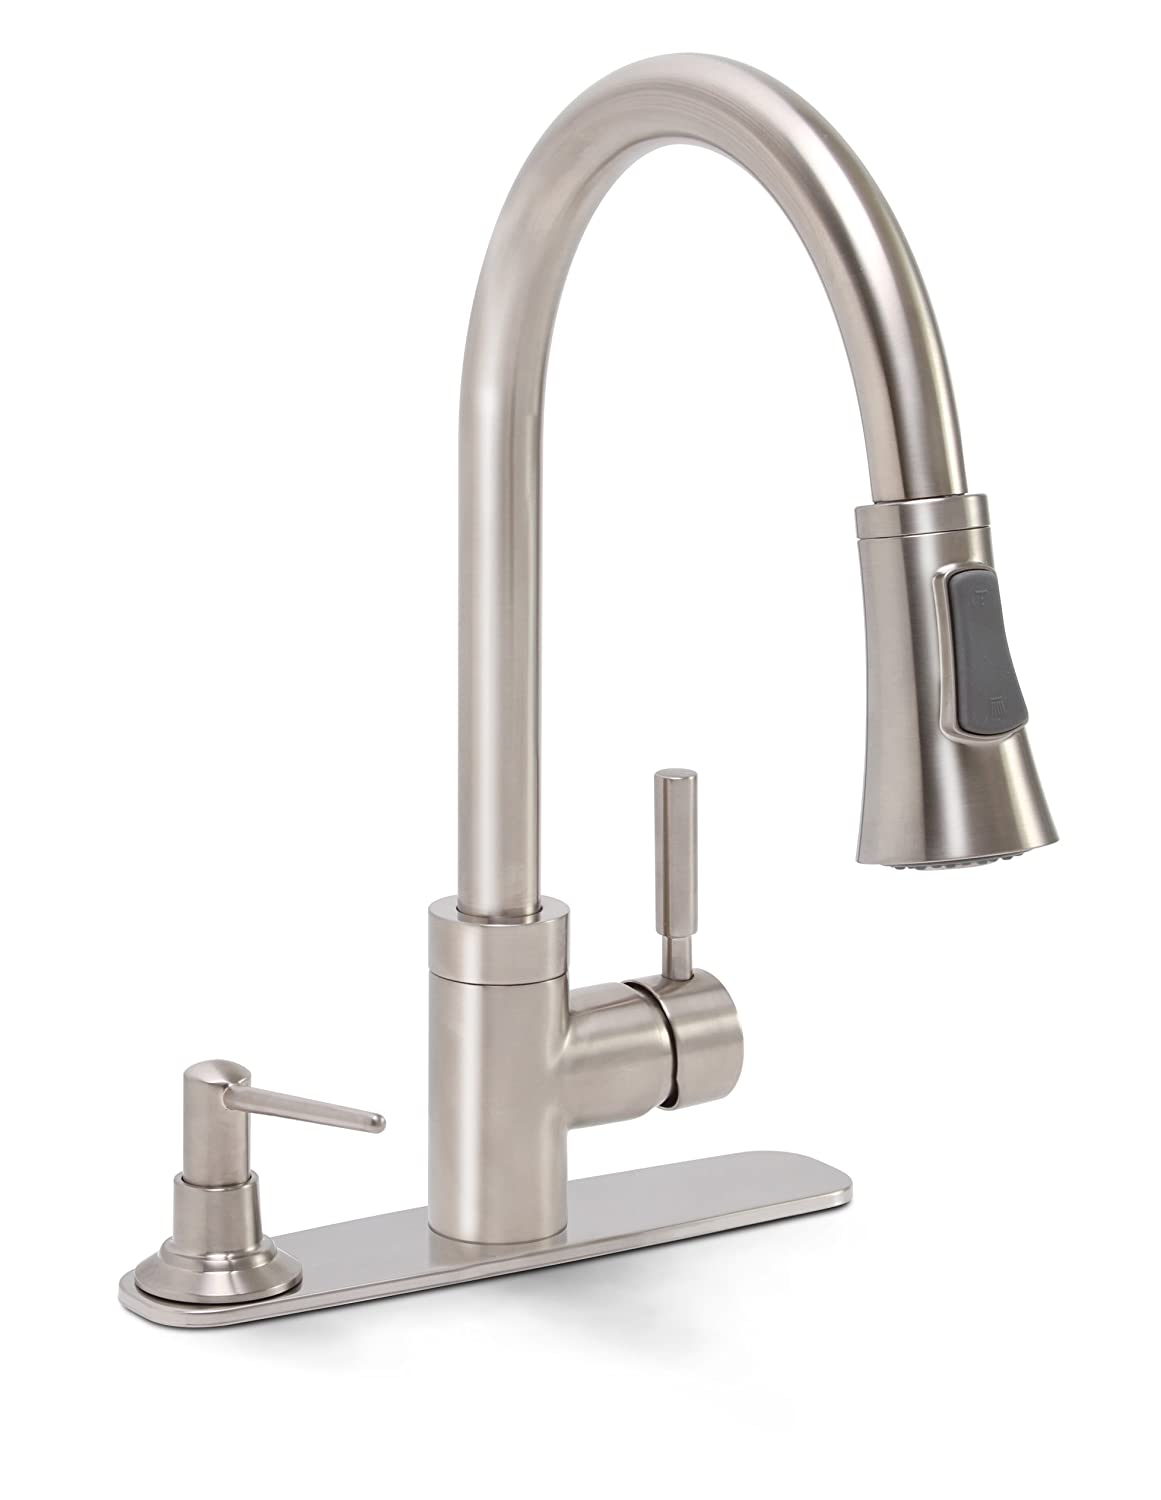 Premier 120077 Essen Lead Free Single Handle Pull Down Kitchen Faucet With  Soap Dispenser, PVD Brushed Nickel   Touch On Kitchen Sink Faucets    Amazon.com